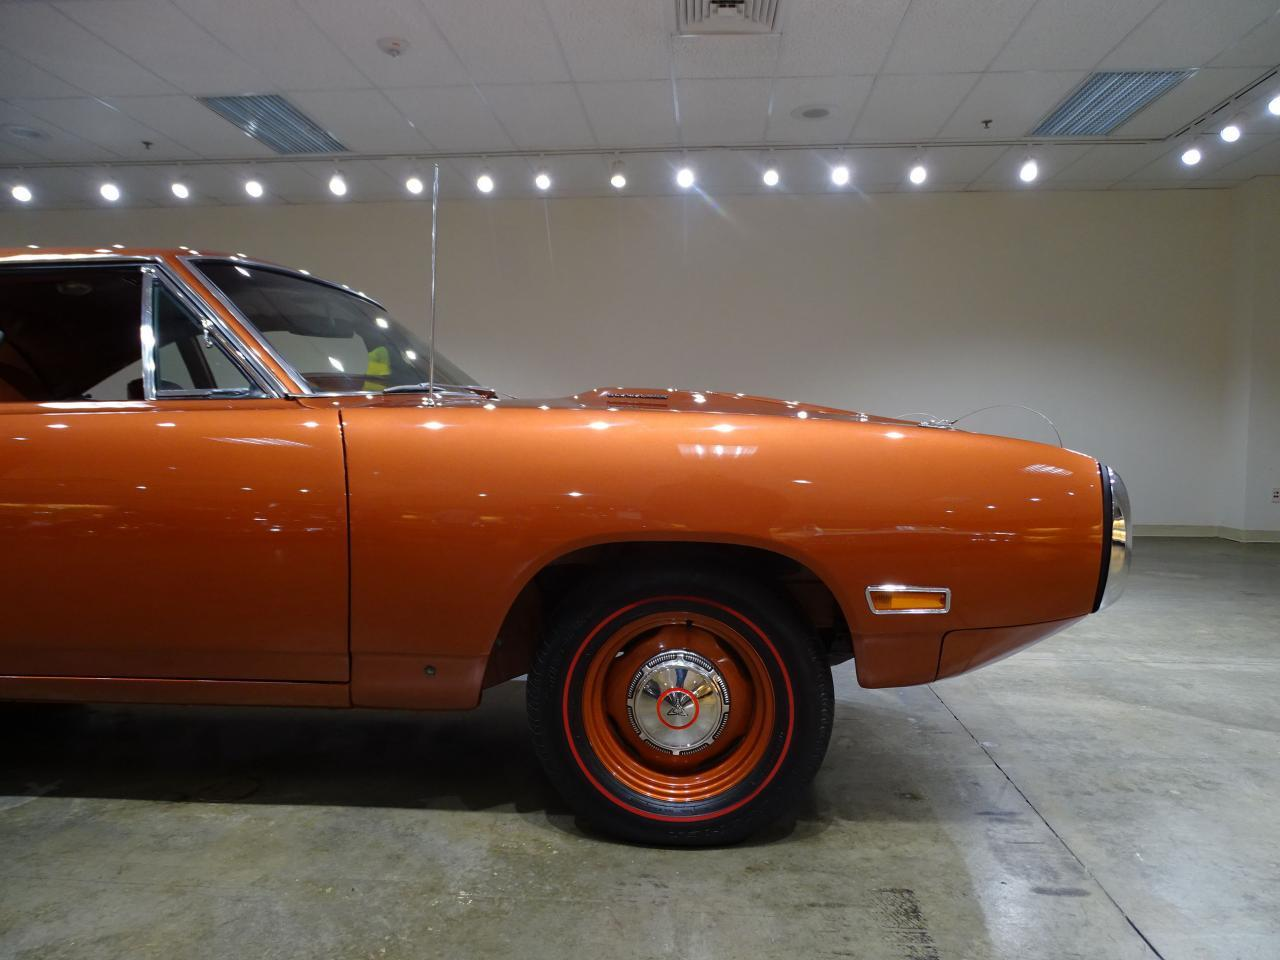 Large Picture of 1970 Dodge Super Bee located in O'Fallon Illinois - $61,000.00 Offered by Gateway Classic Cars - St. Louis - QB4W